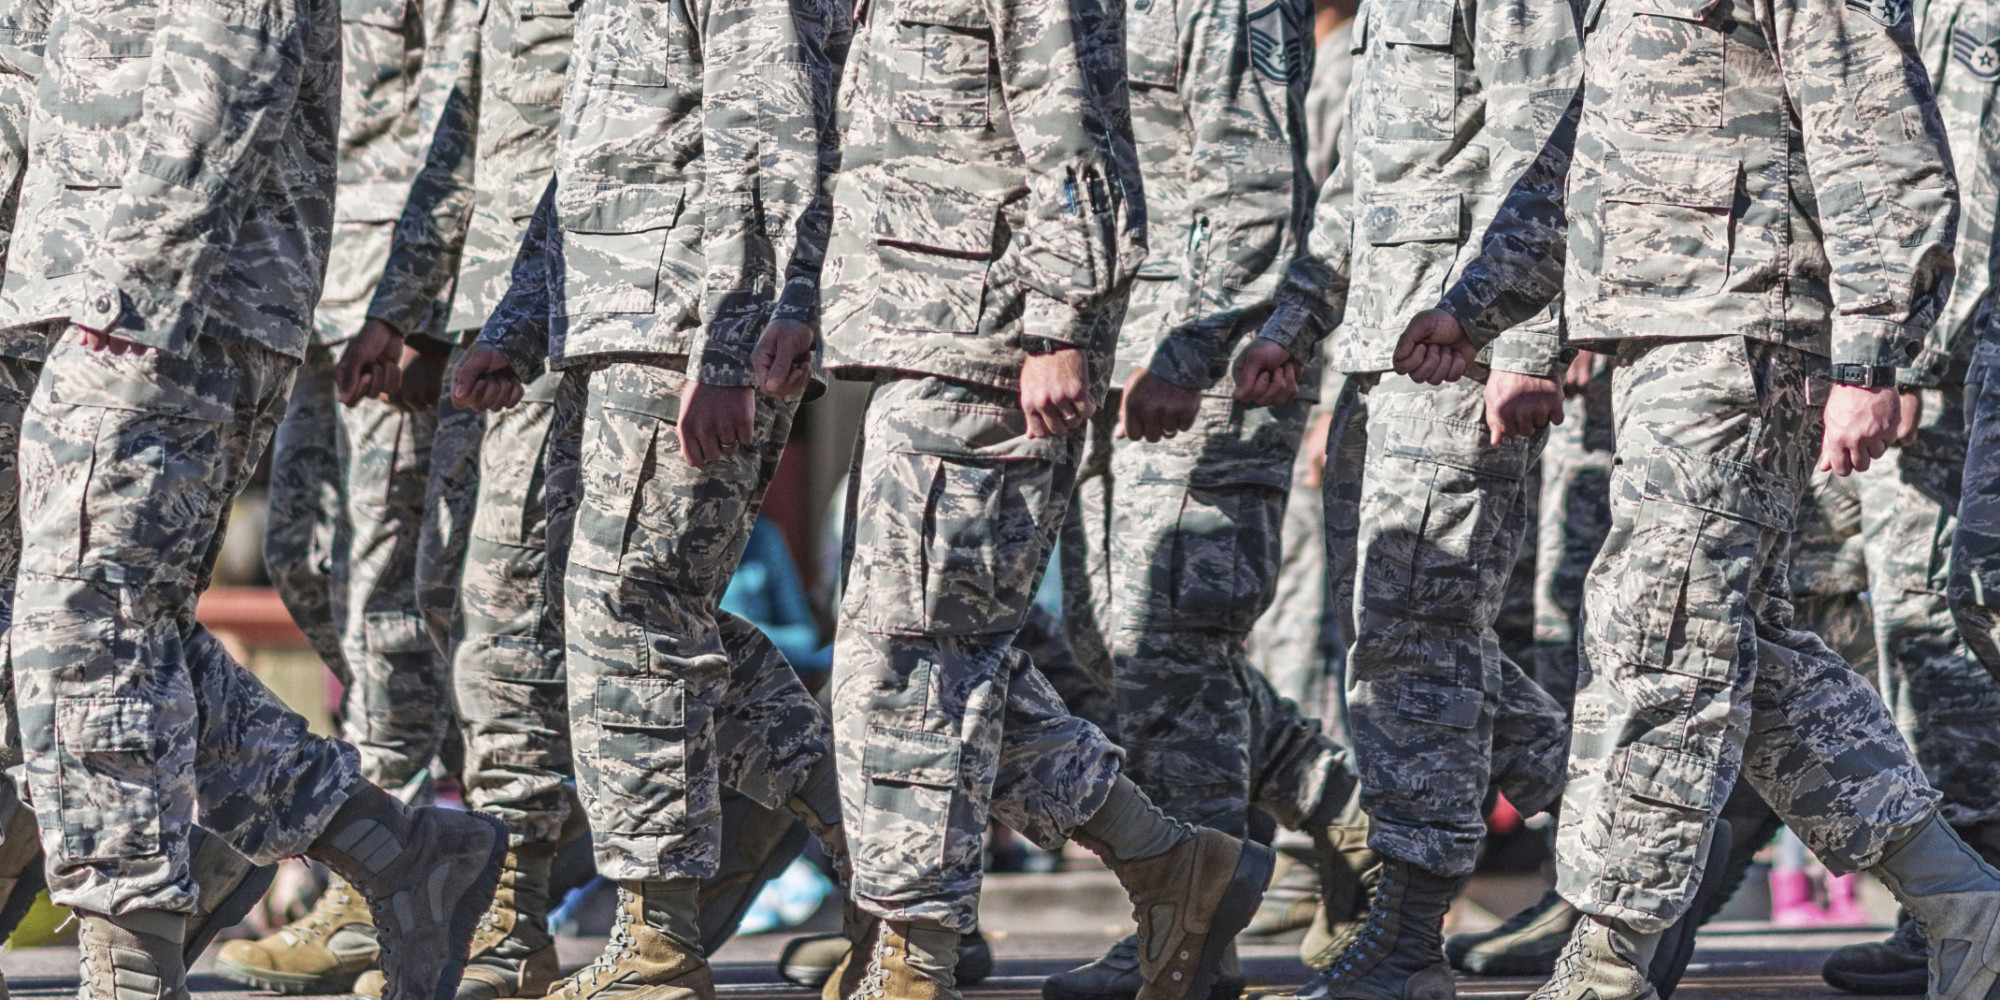 essay on timeliness in the army Below is an essay on the importance of being on time in the military from anti essays, your source for research papers, essays, and term paper examples the importance of being on time in life and in the military.